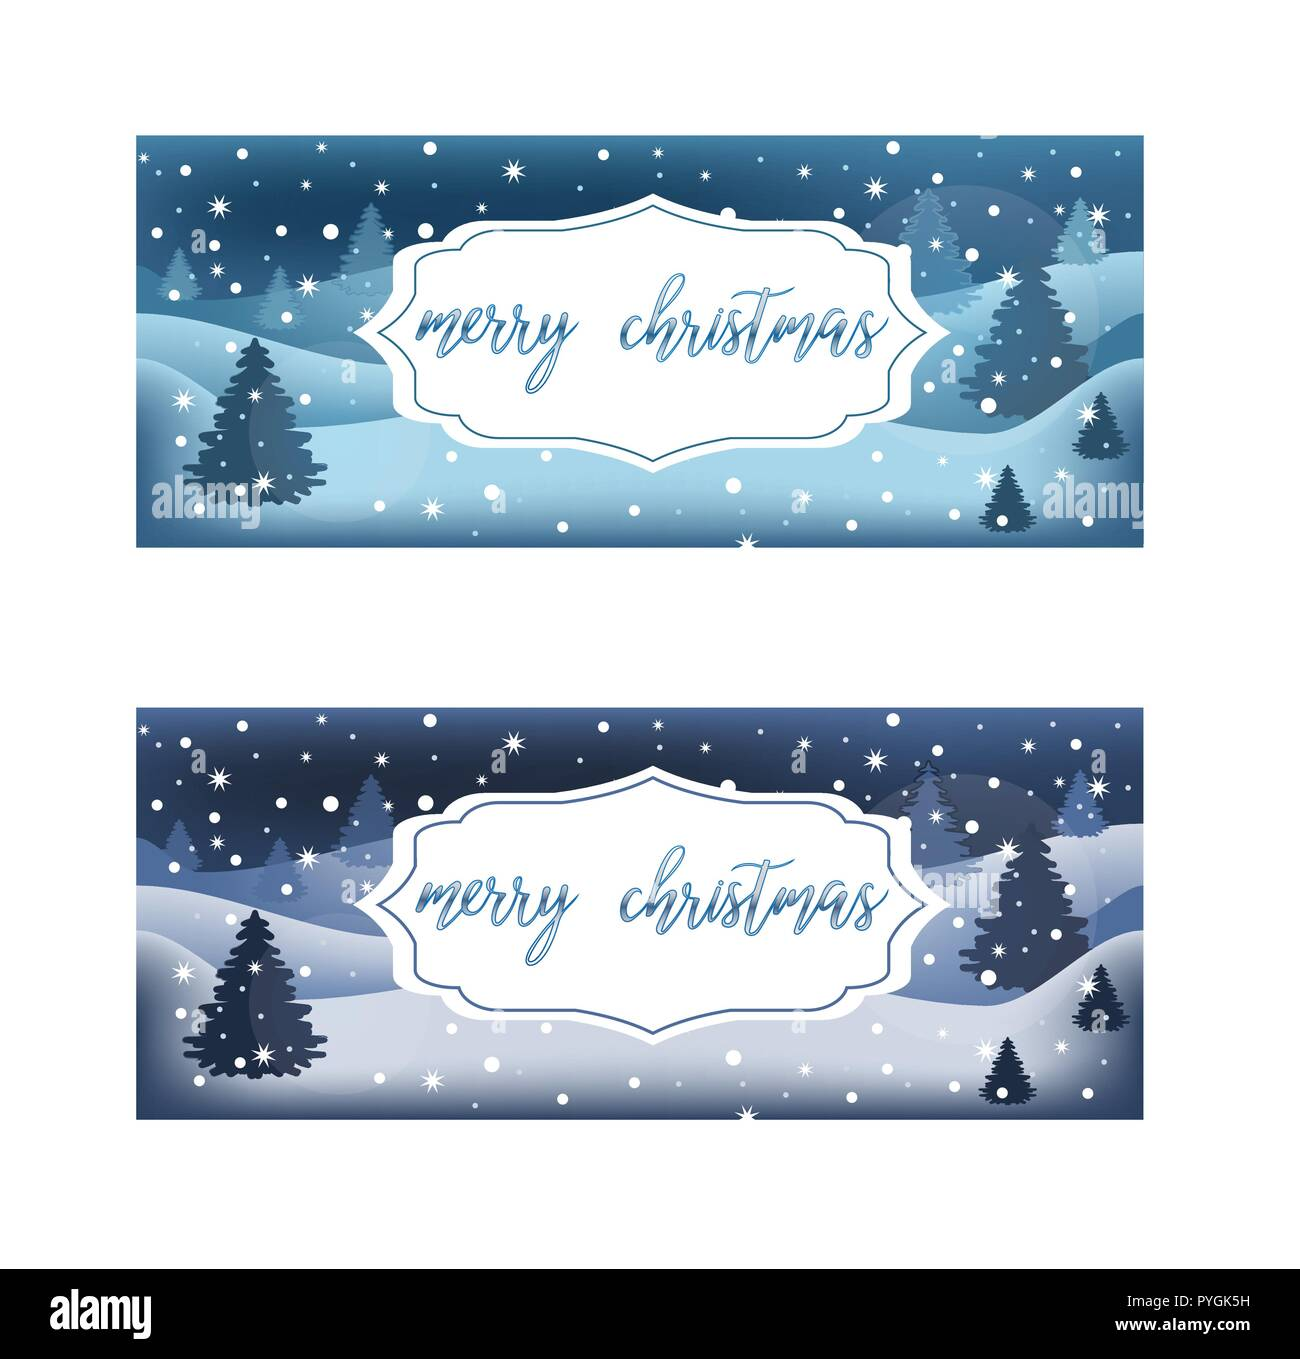 Merry Christmas Type Stockfotos & Merry Christmas Type Bilder - Alamy